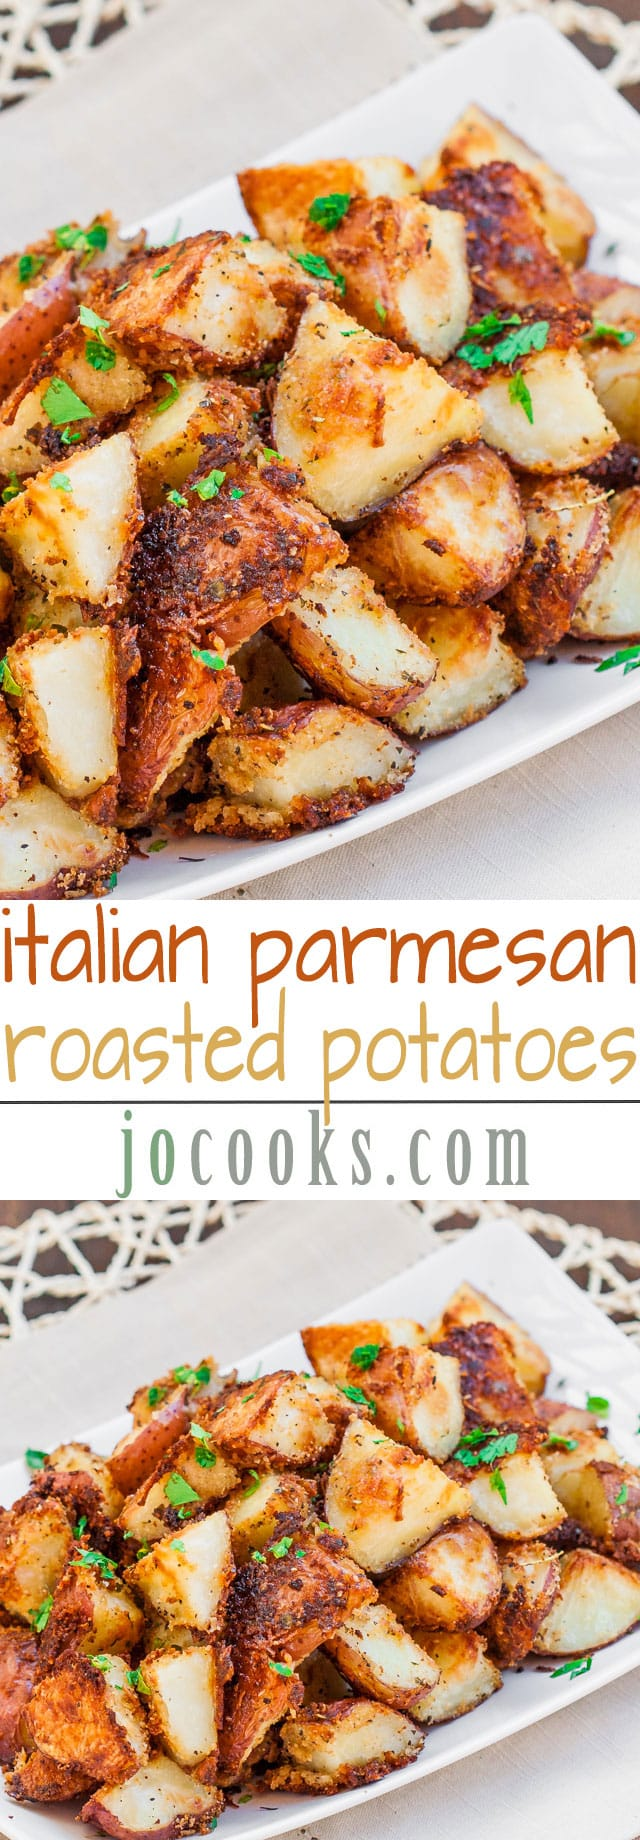 italian-parmesan-roasted-potatoes-collage